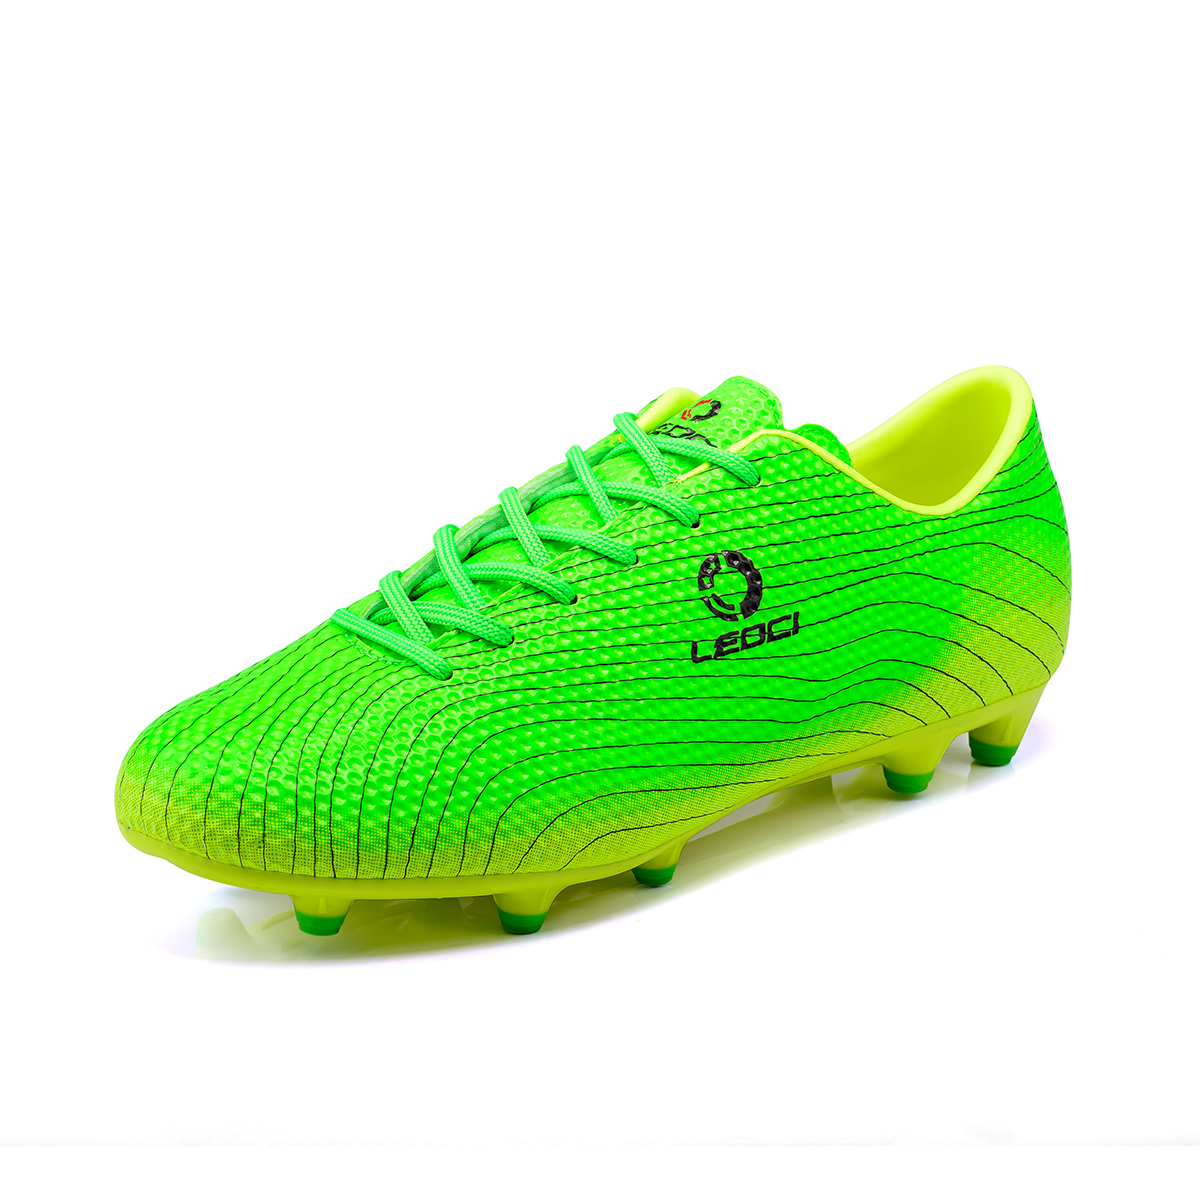 69447d7a8a2a New Soccer Cleats For Boys